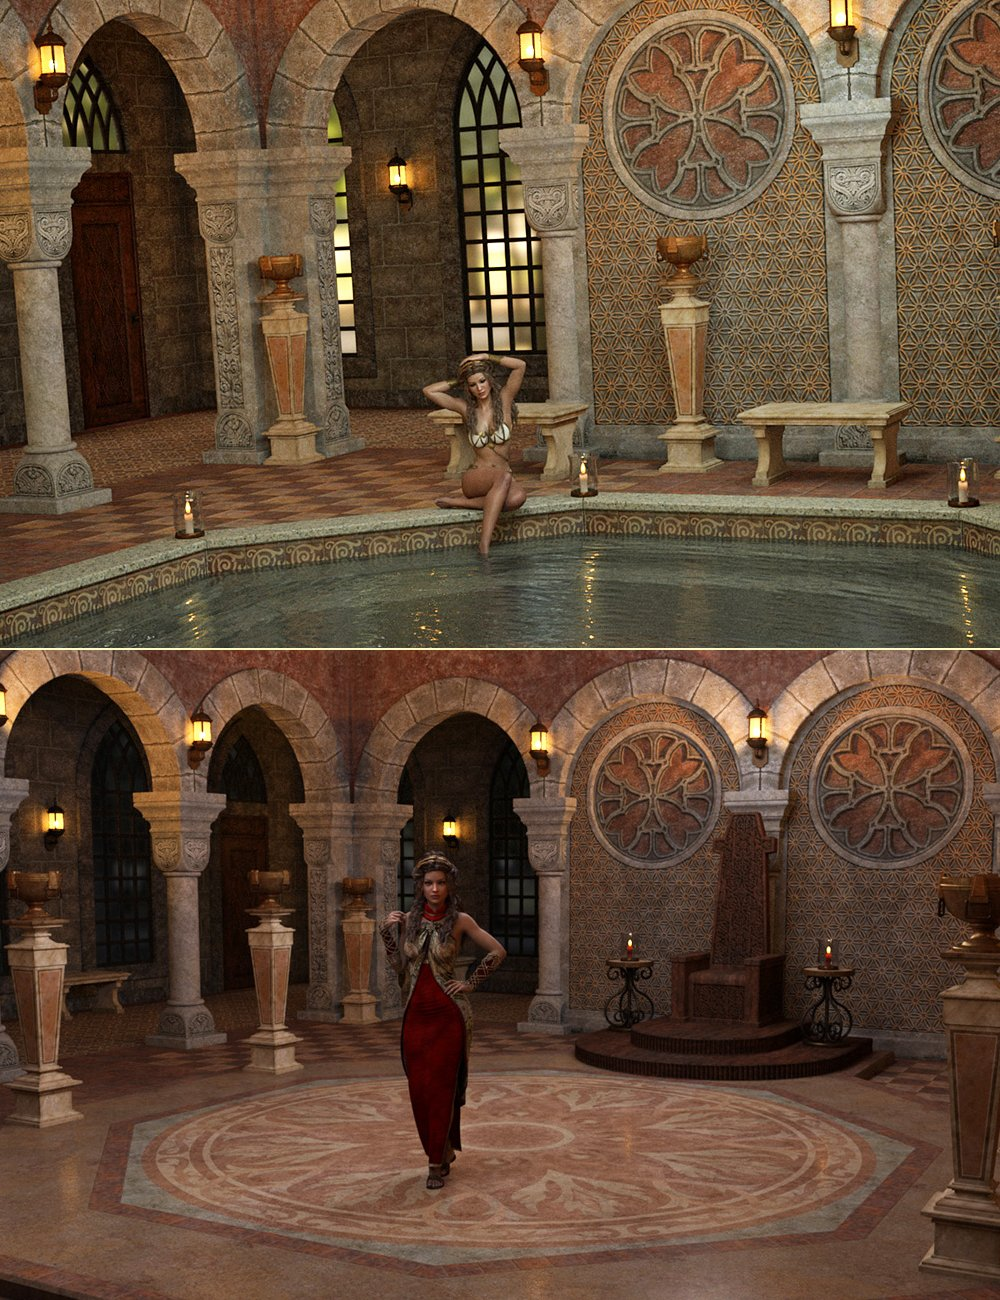 DM's Serenity Court by: Daniemarforno, 3D Models by Daz 3D